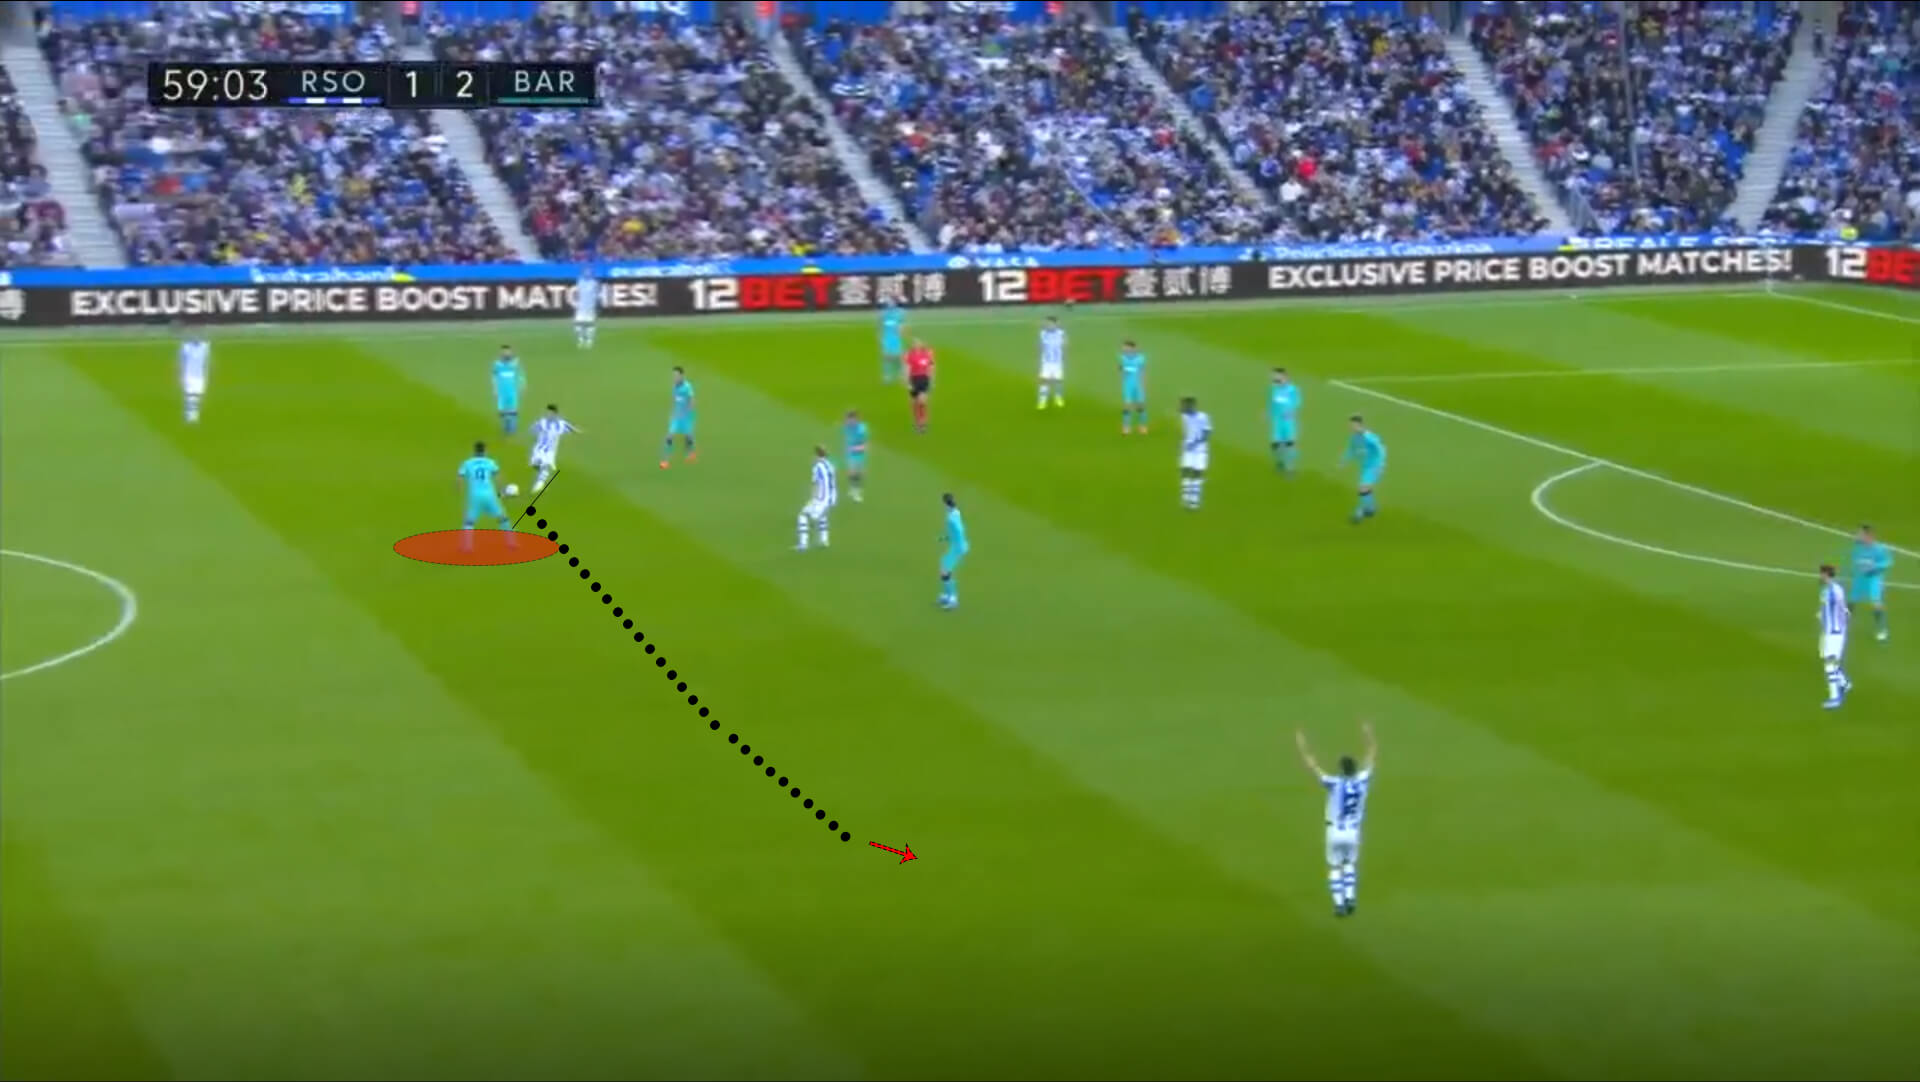 Luis Suarez 2019/20 - scout report - tactical analysis tactics